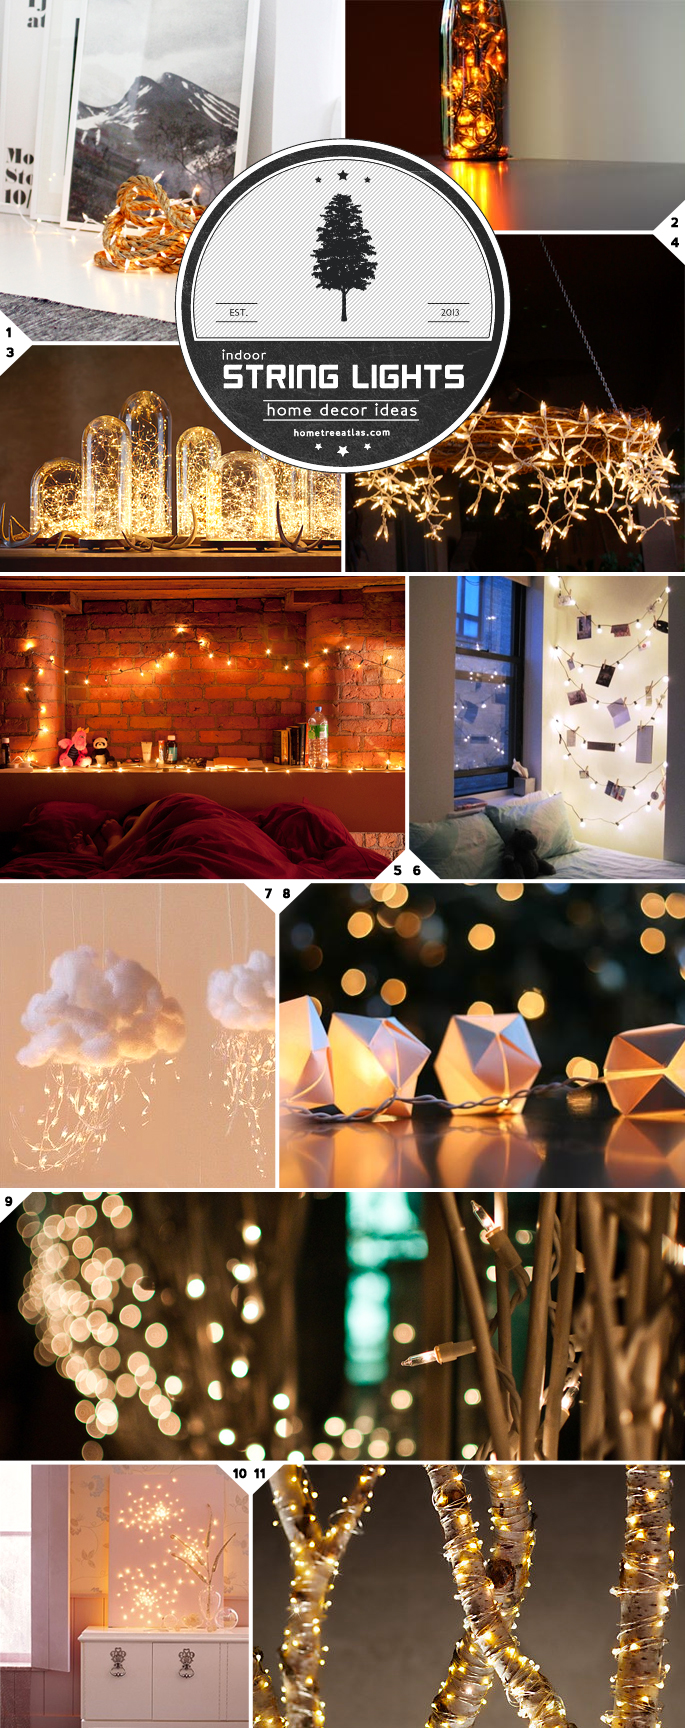 Home Decor Ideas: Beautiful Ways to Use String Lights ...